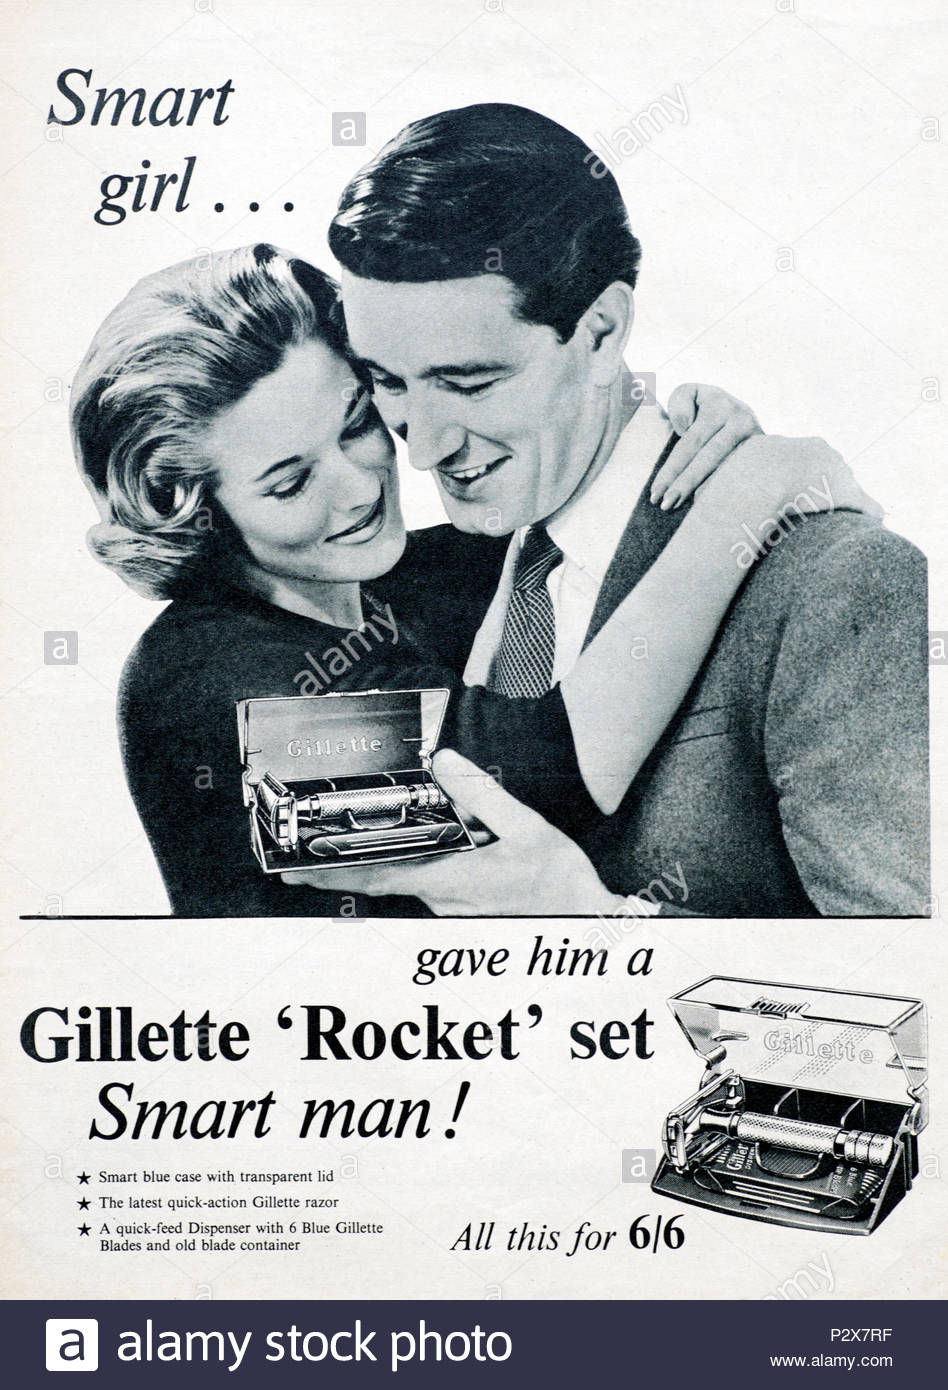 Vintage advertising for Gillette Rocket Set from 1956 - Stock Image